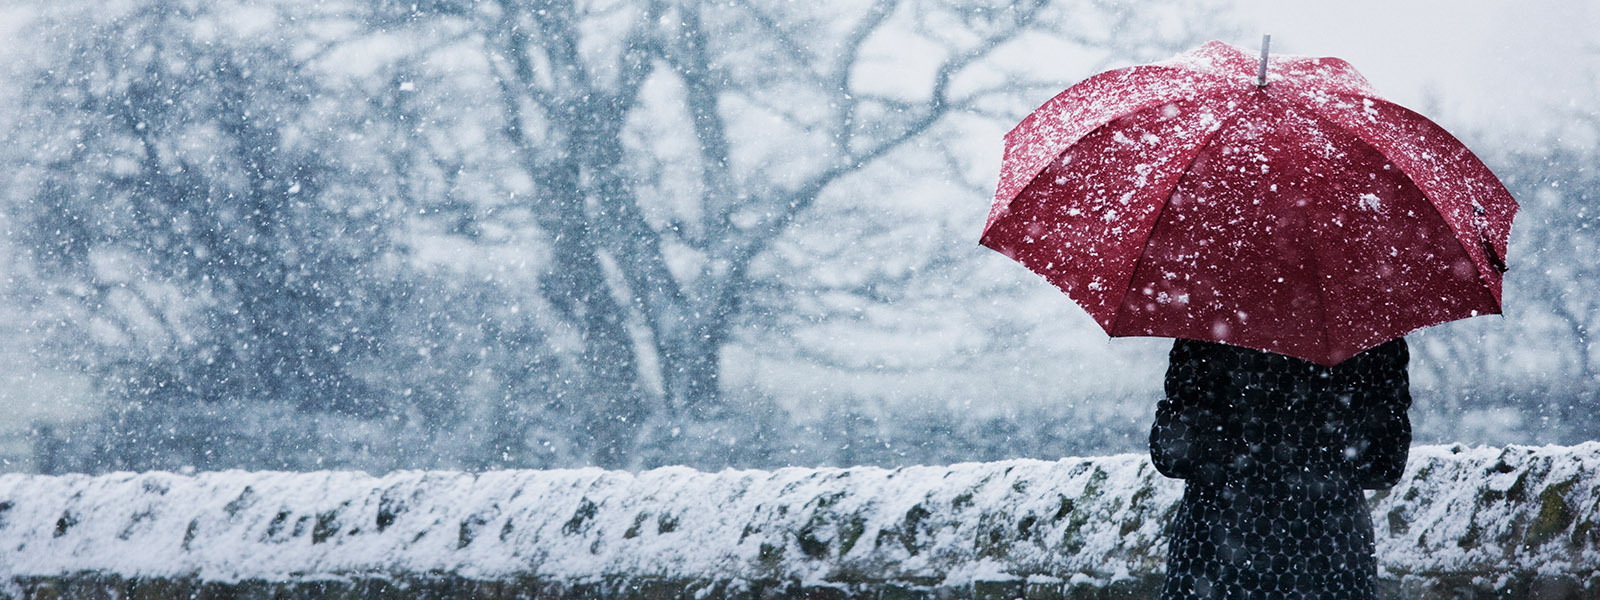 Woman walking with an umbrella in a snowstorm